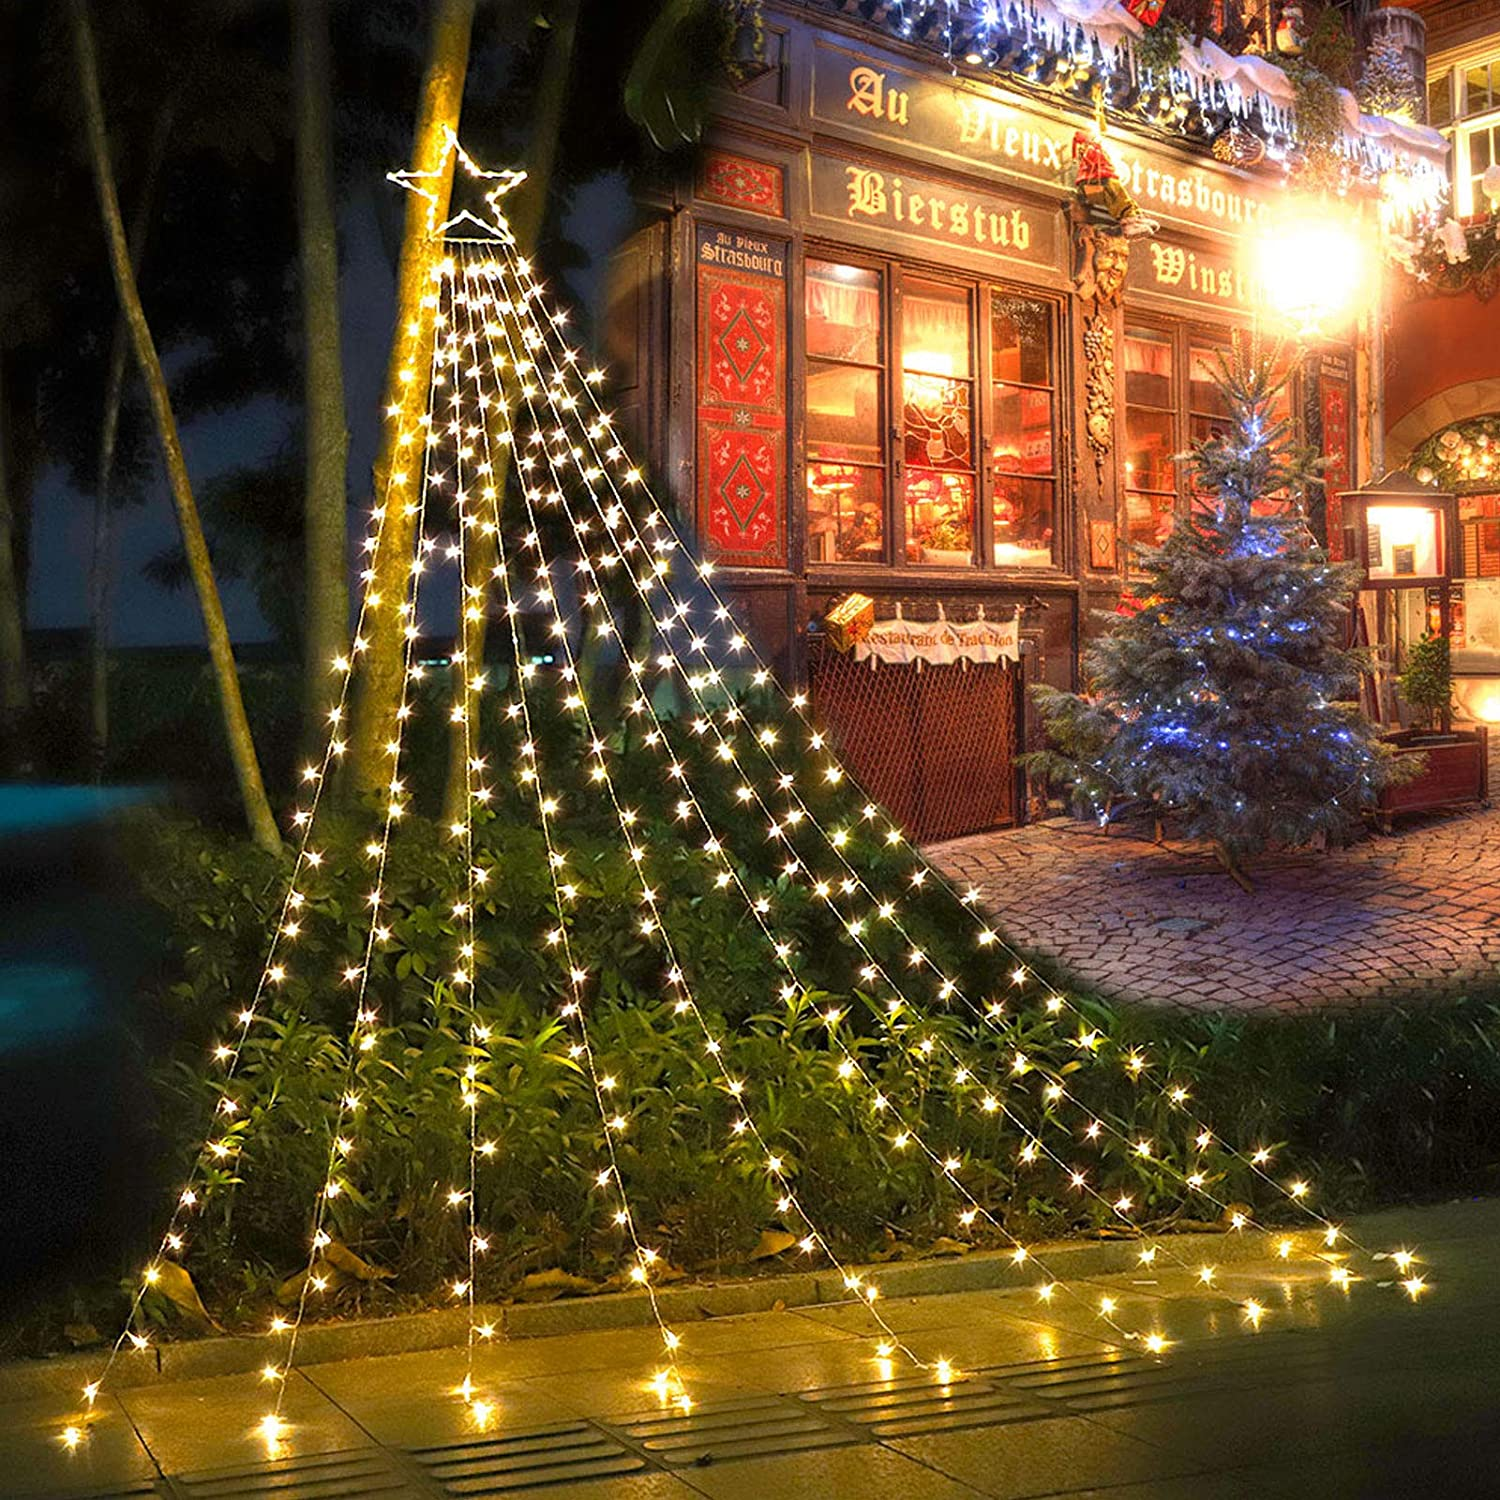 2021 Christmas Lights Amazon Com 2021 New Funiao Decorations Star String Lights 317 Led Waterfall Christmas Tree Lights With 12 Topper Star Christmas Lights Indoor Outdoor Decorative For Yard Party Home Holiday Decor Warm White